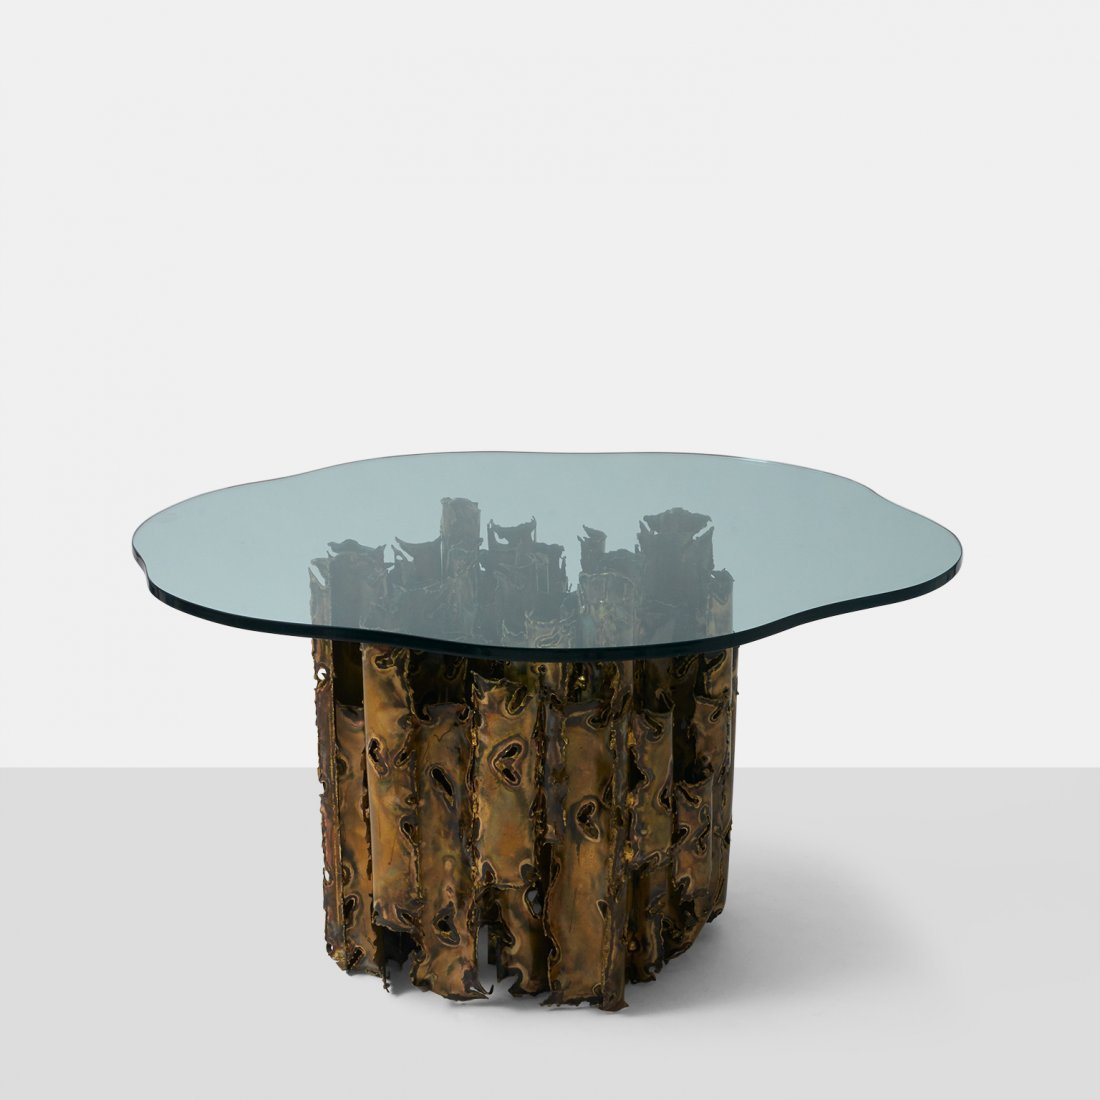 Silas Seandel, Cathedral Dining Table